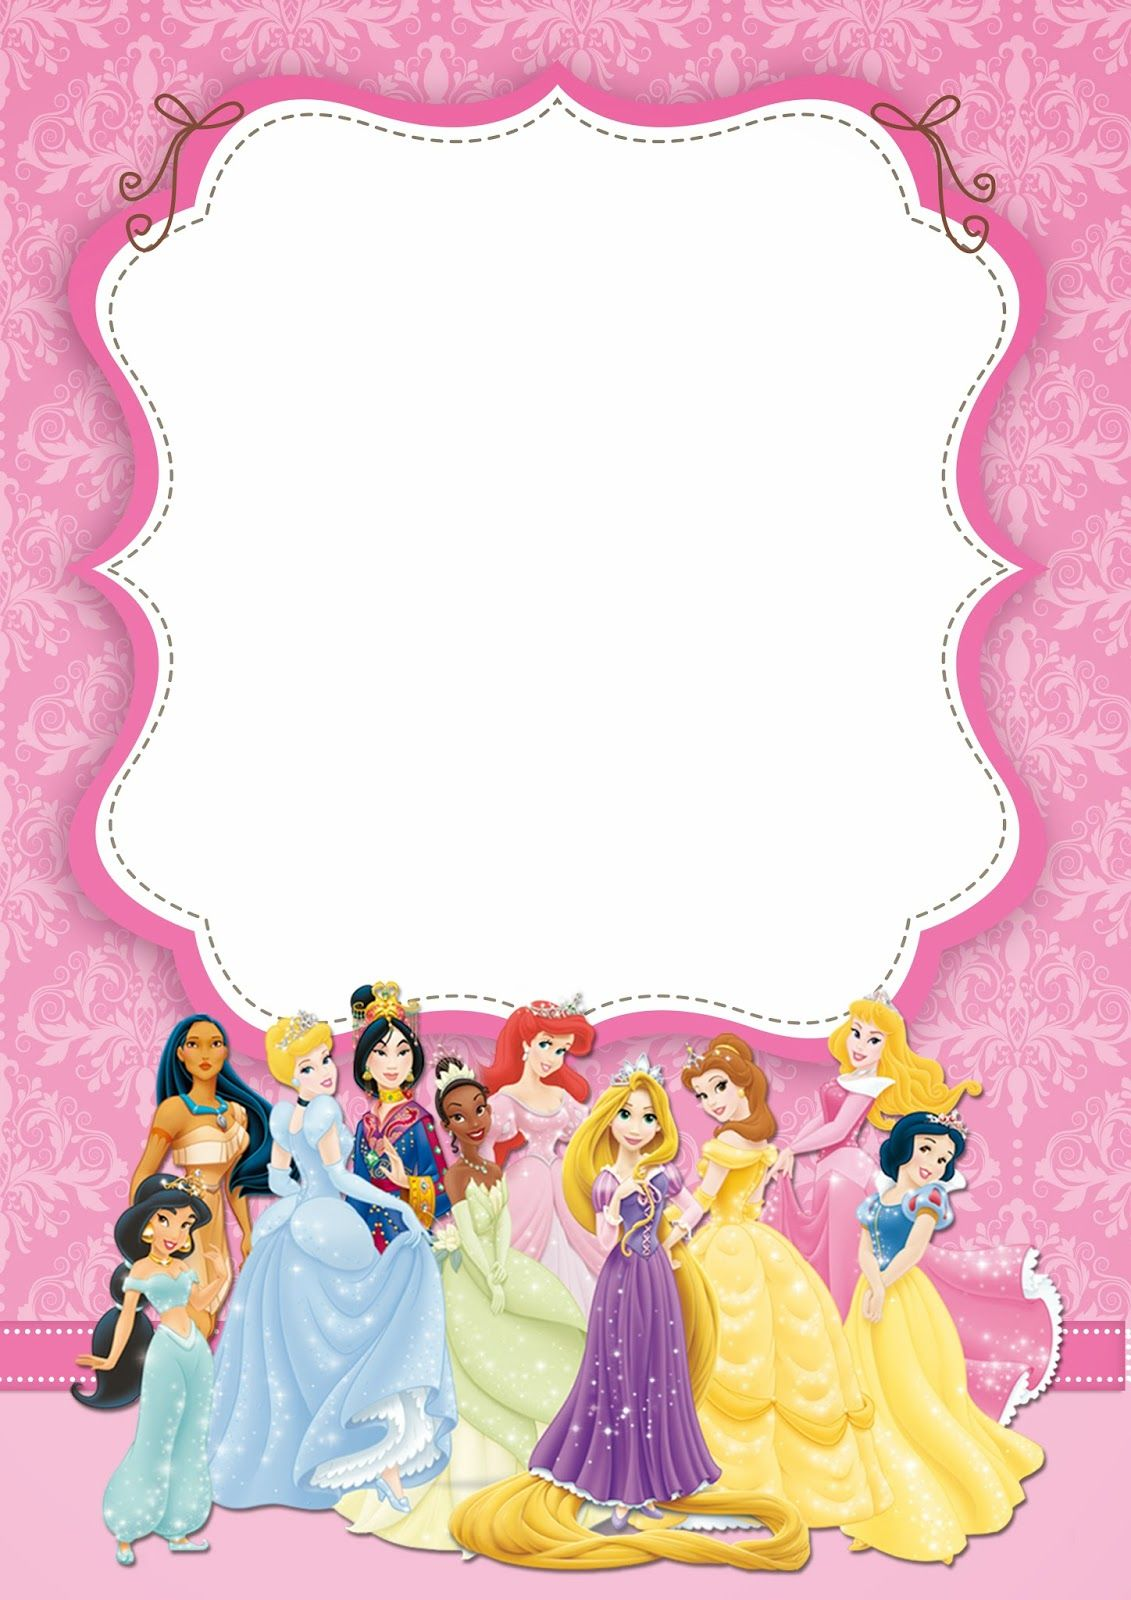 FREE Printable Disney Princess Ticket Invitation Template | Free ...